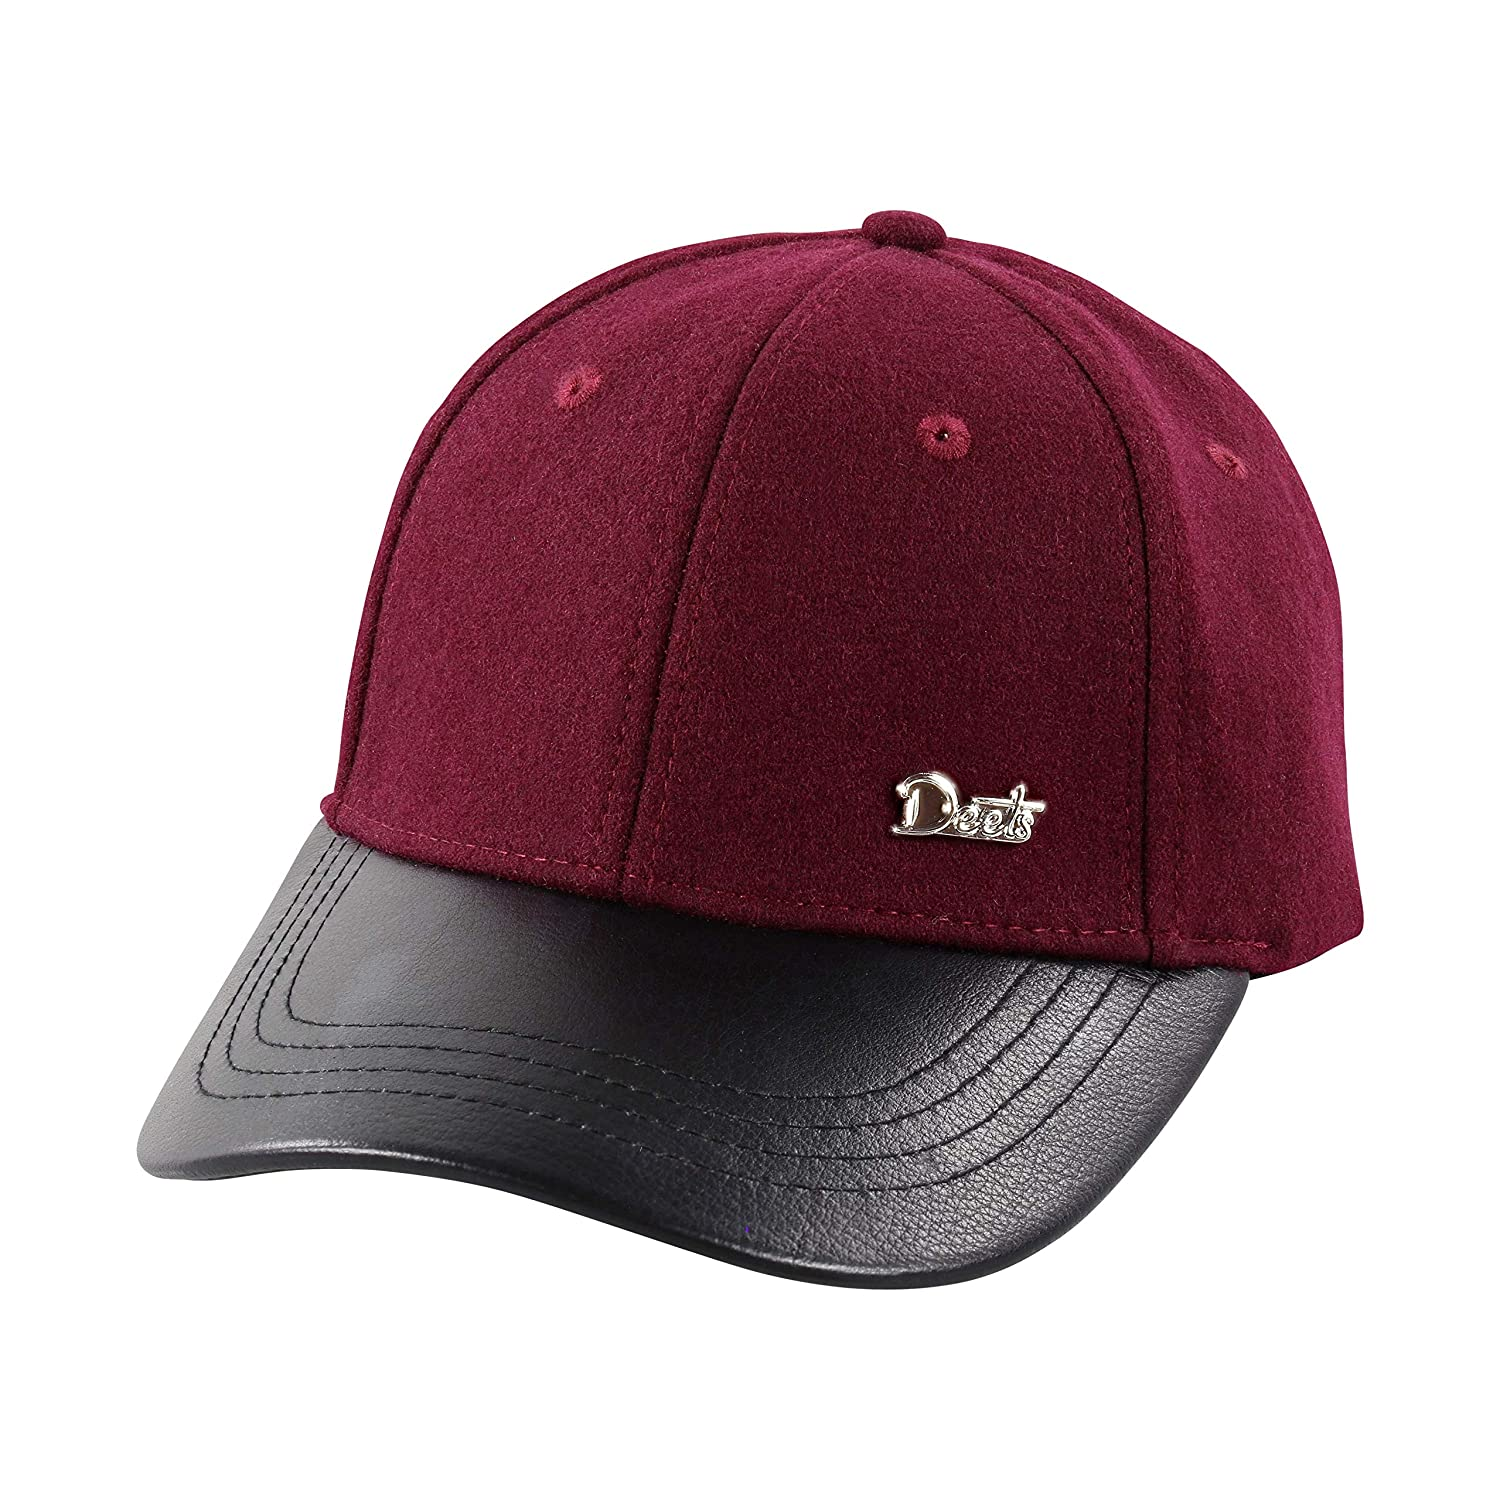 Amazon.com  Deets Fashion Leather   Cashmere Baseball Cap Unisex for Men  and Women Comfortable Luxury Hat  Clothing c44929faa94